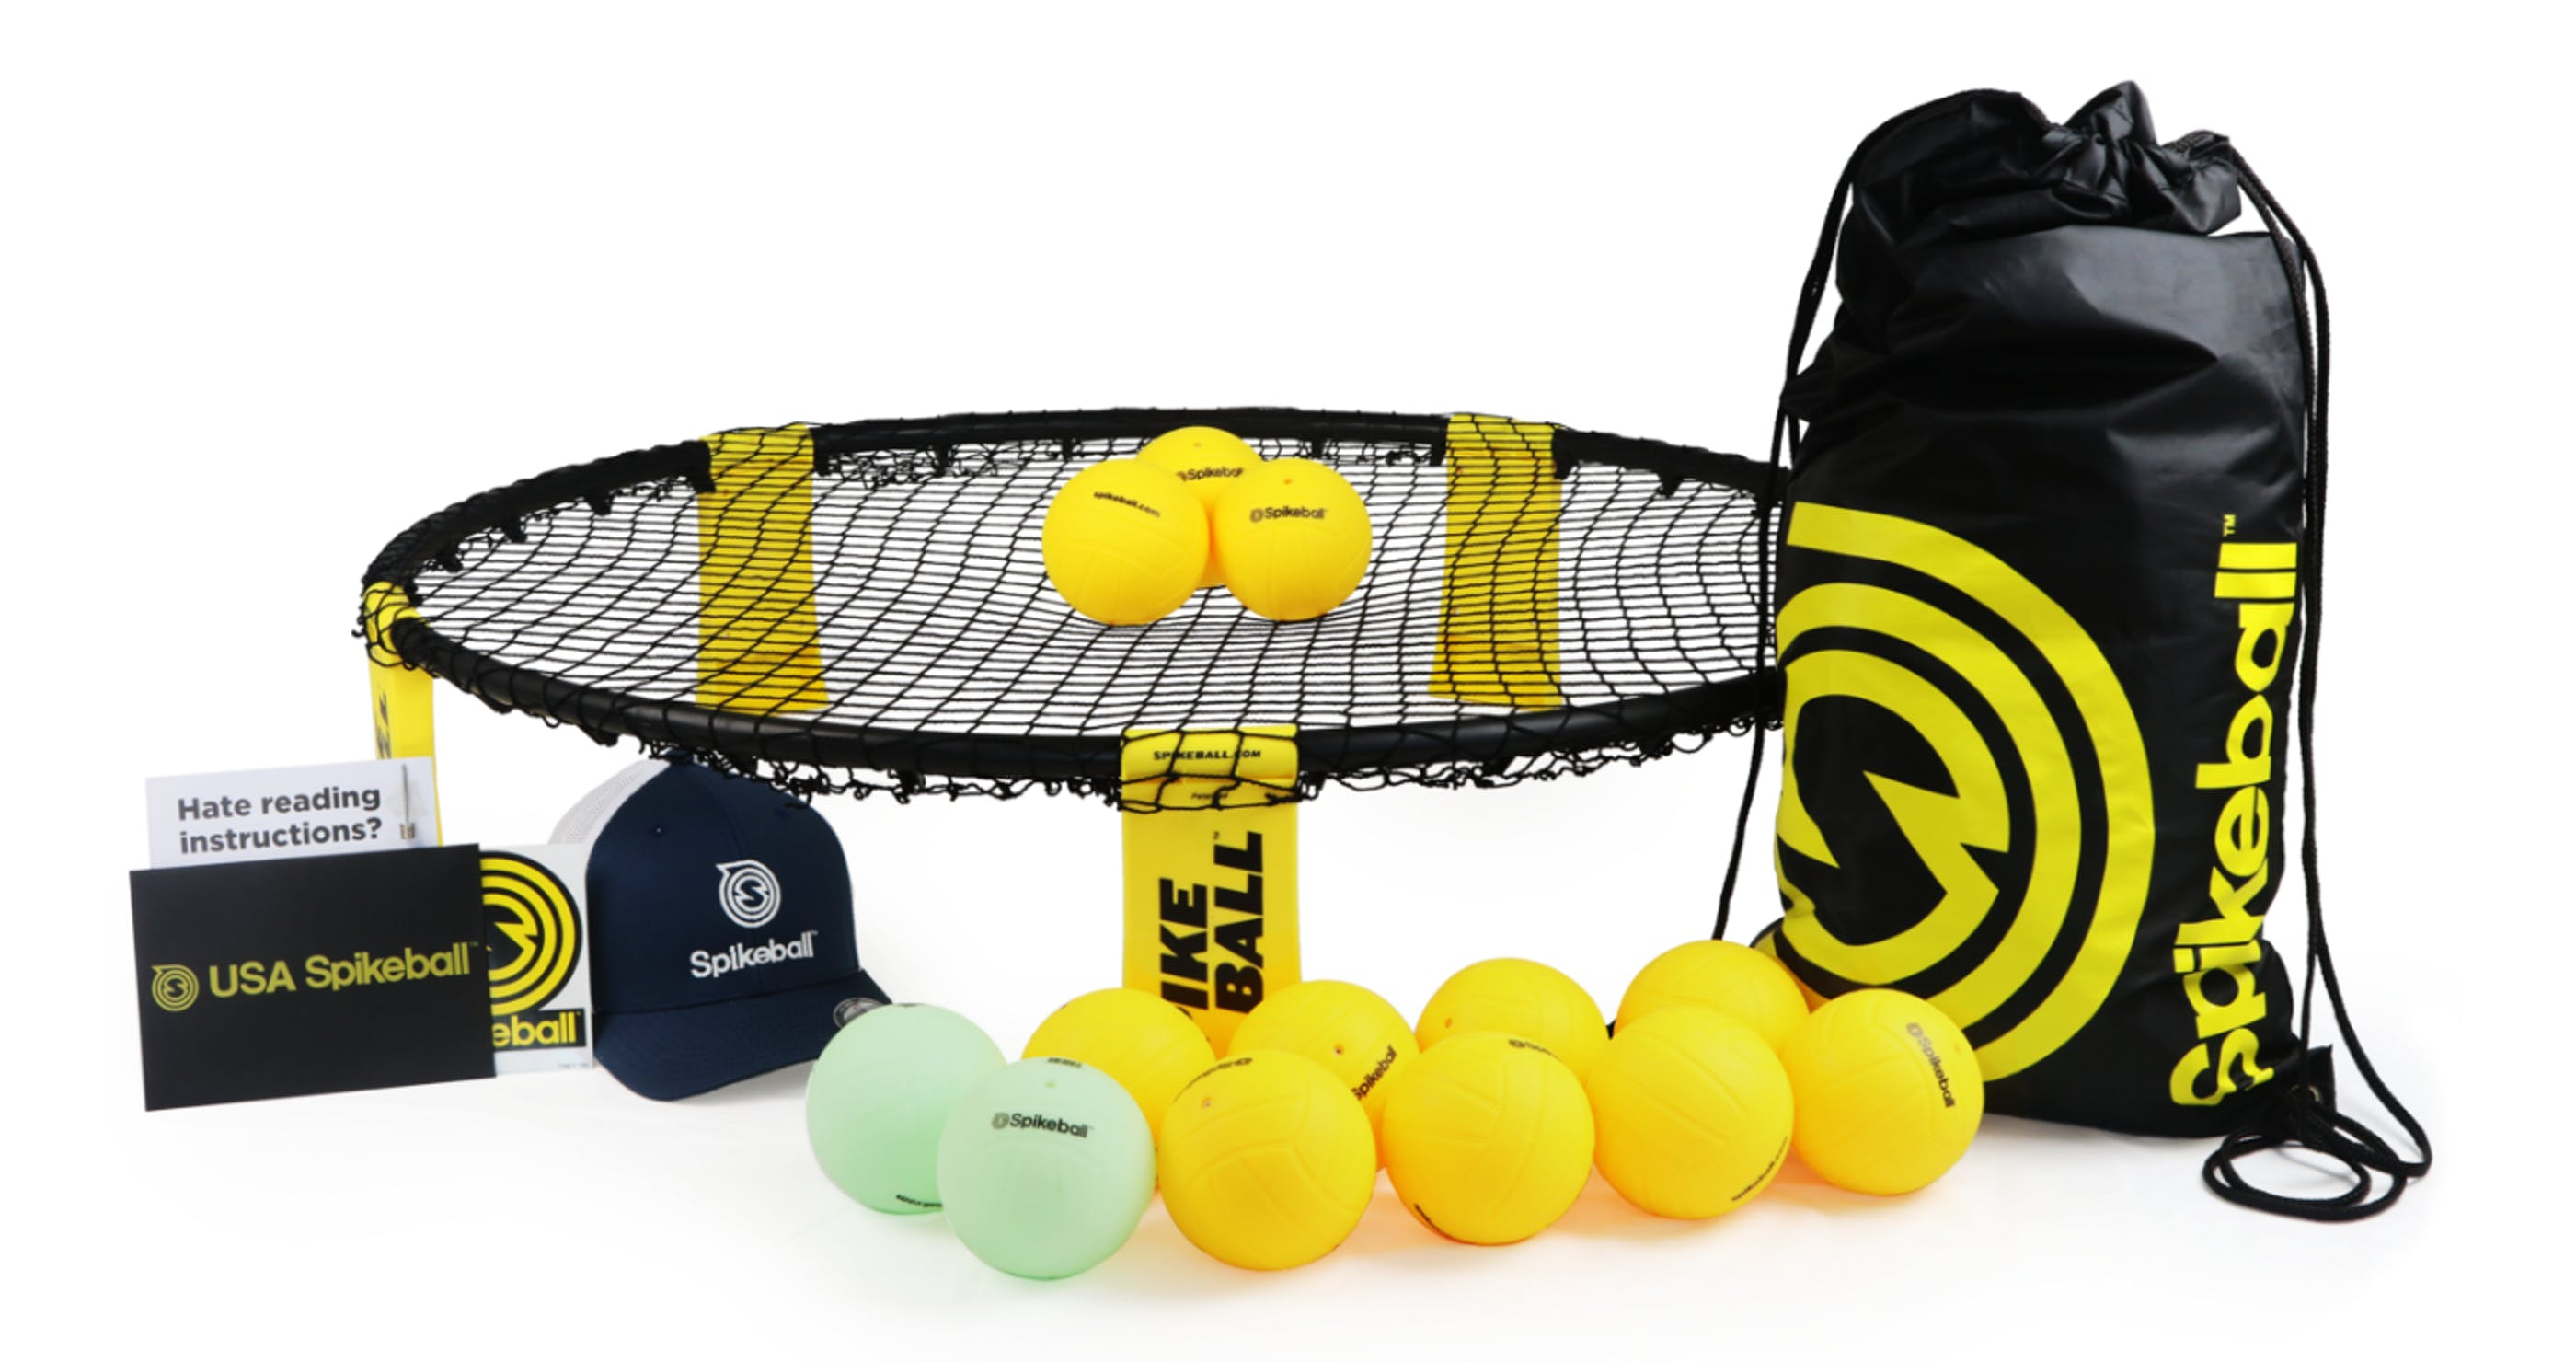 Spikeball's Road to Victory Kit